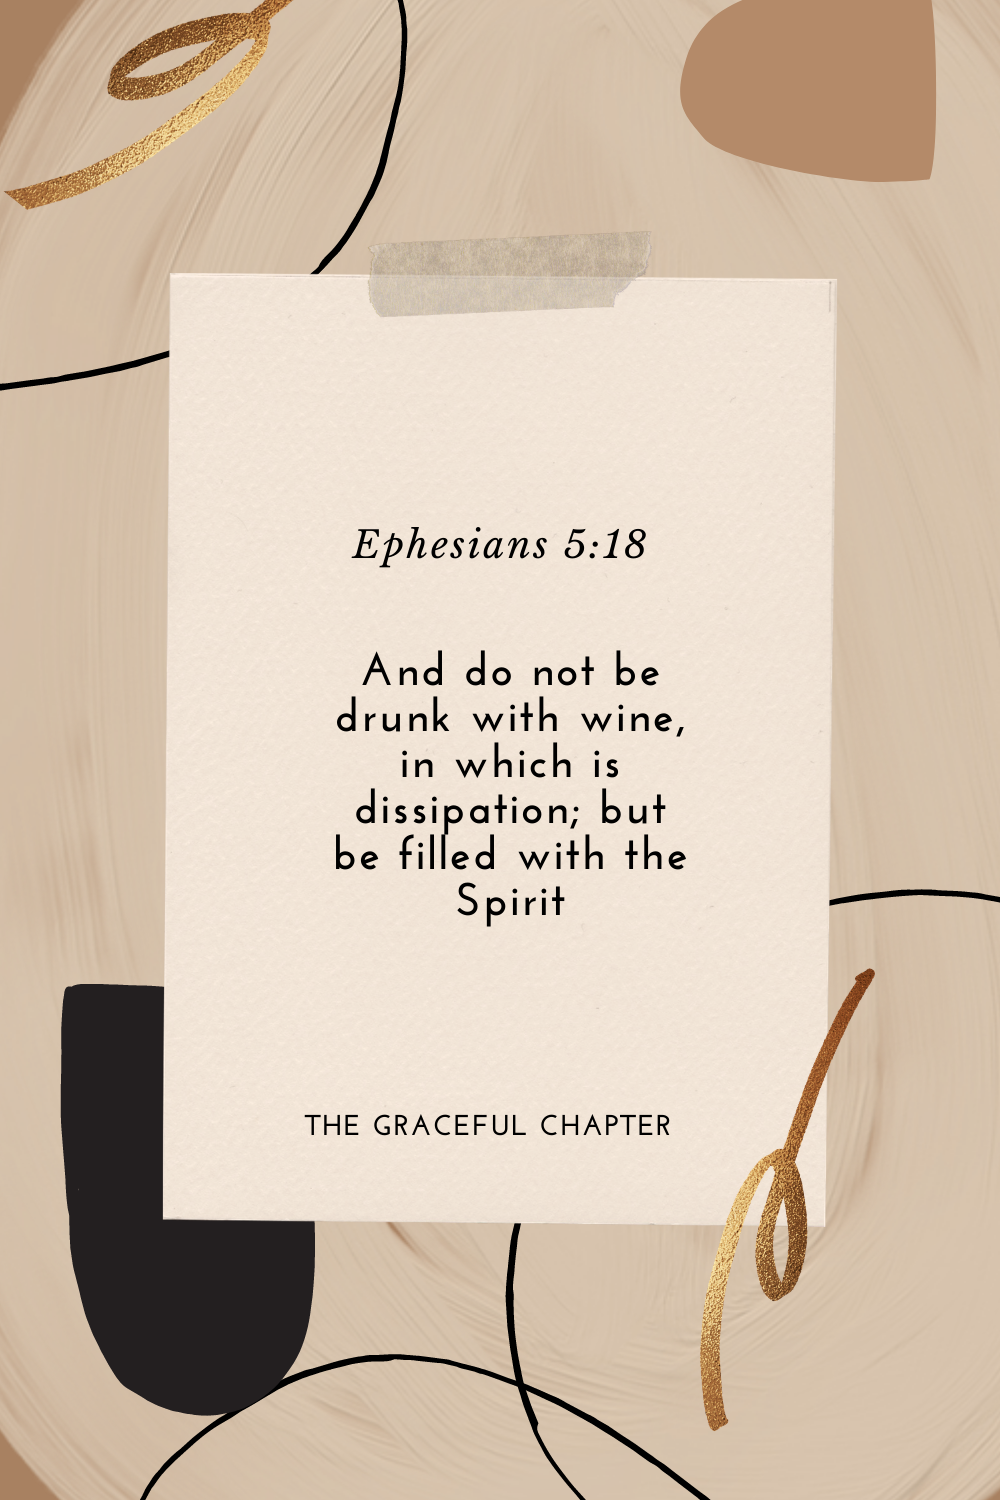 And do not be drunk with wine, in which is dissipation; but be filled with the Spirit Ephesians 5:18